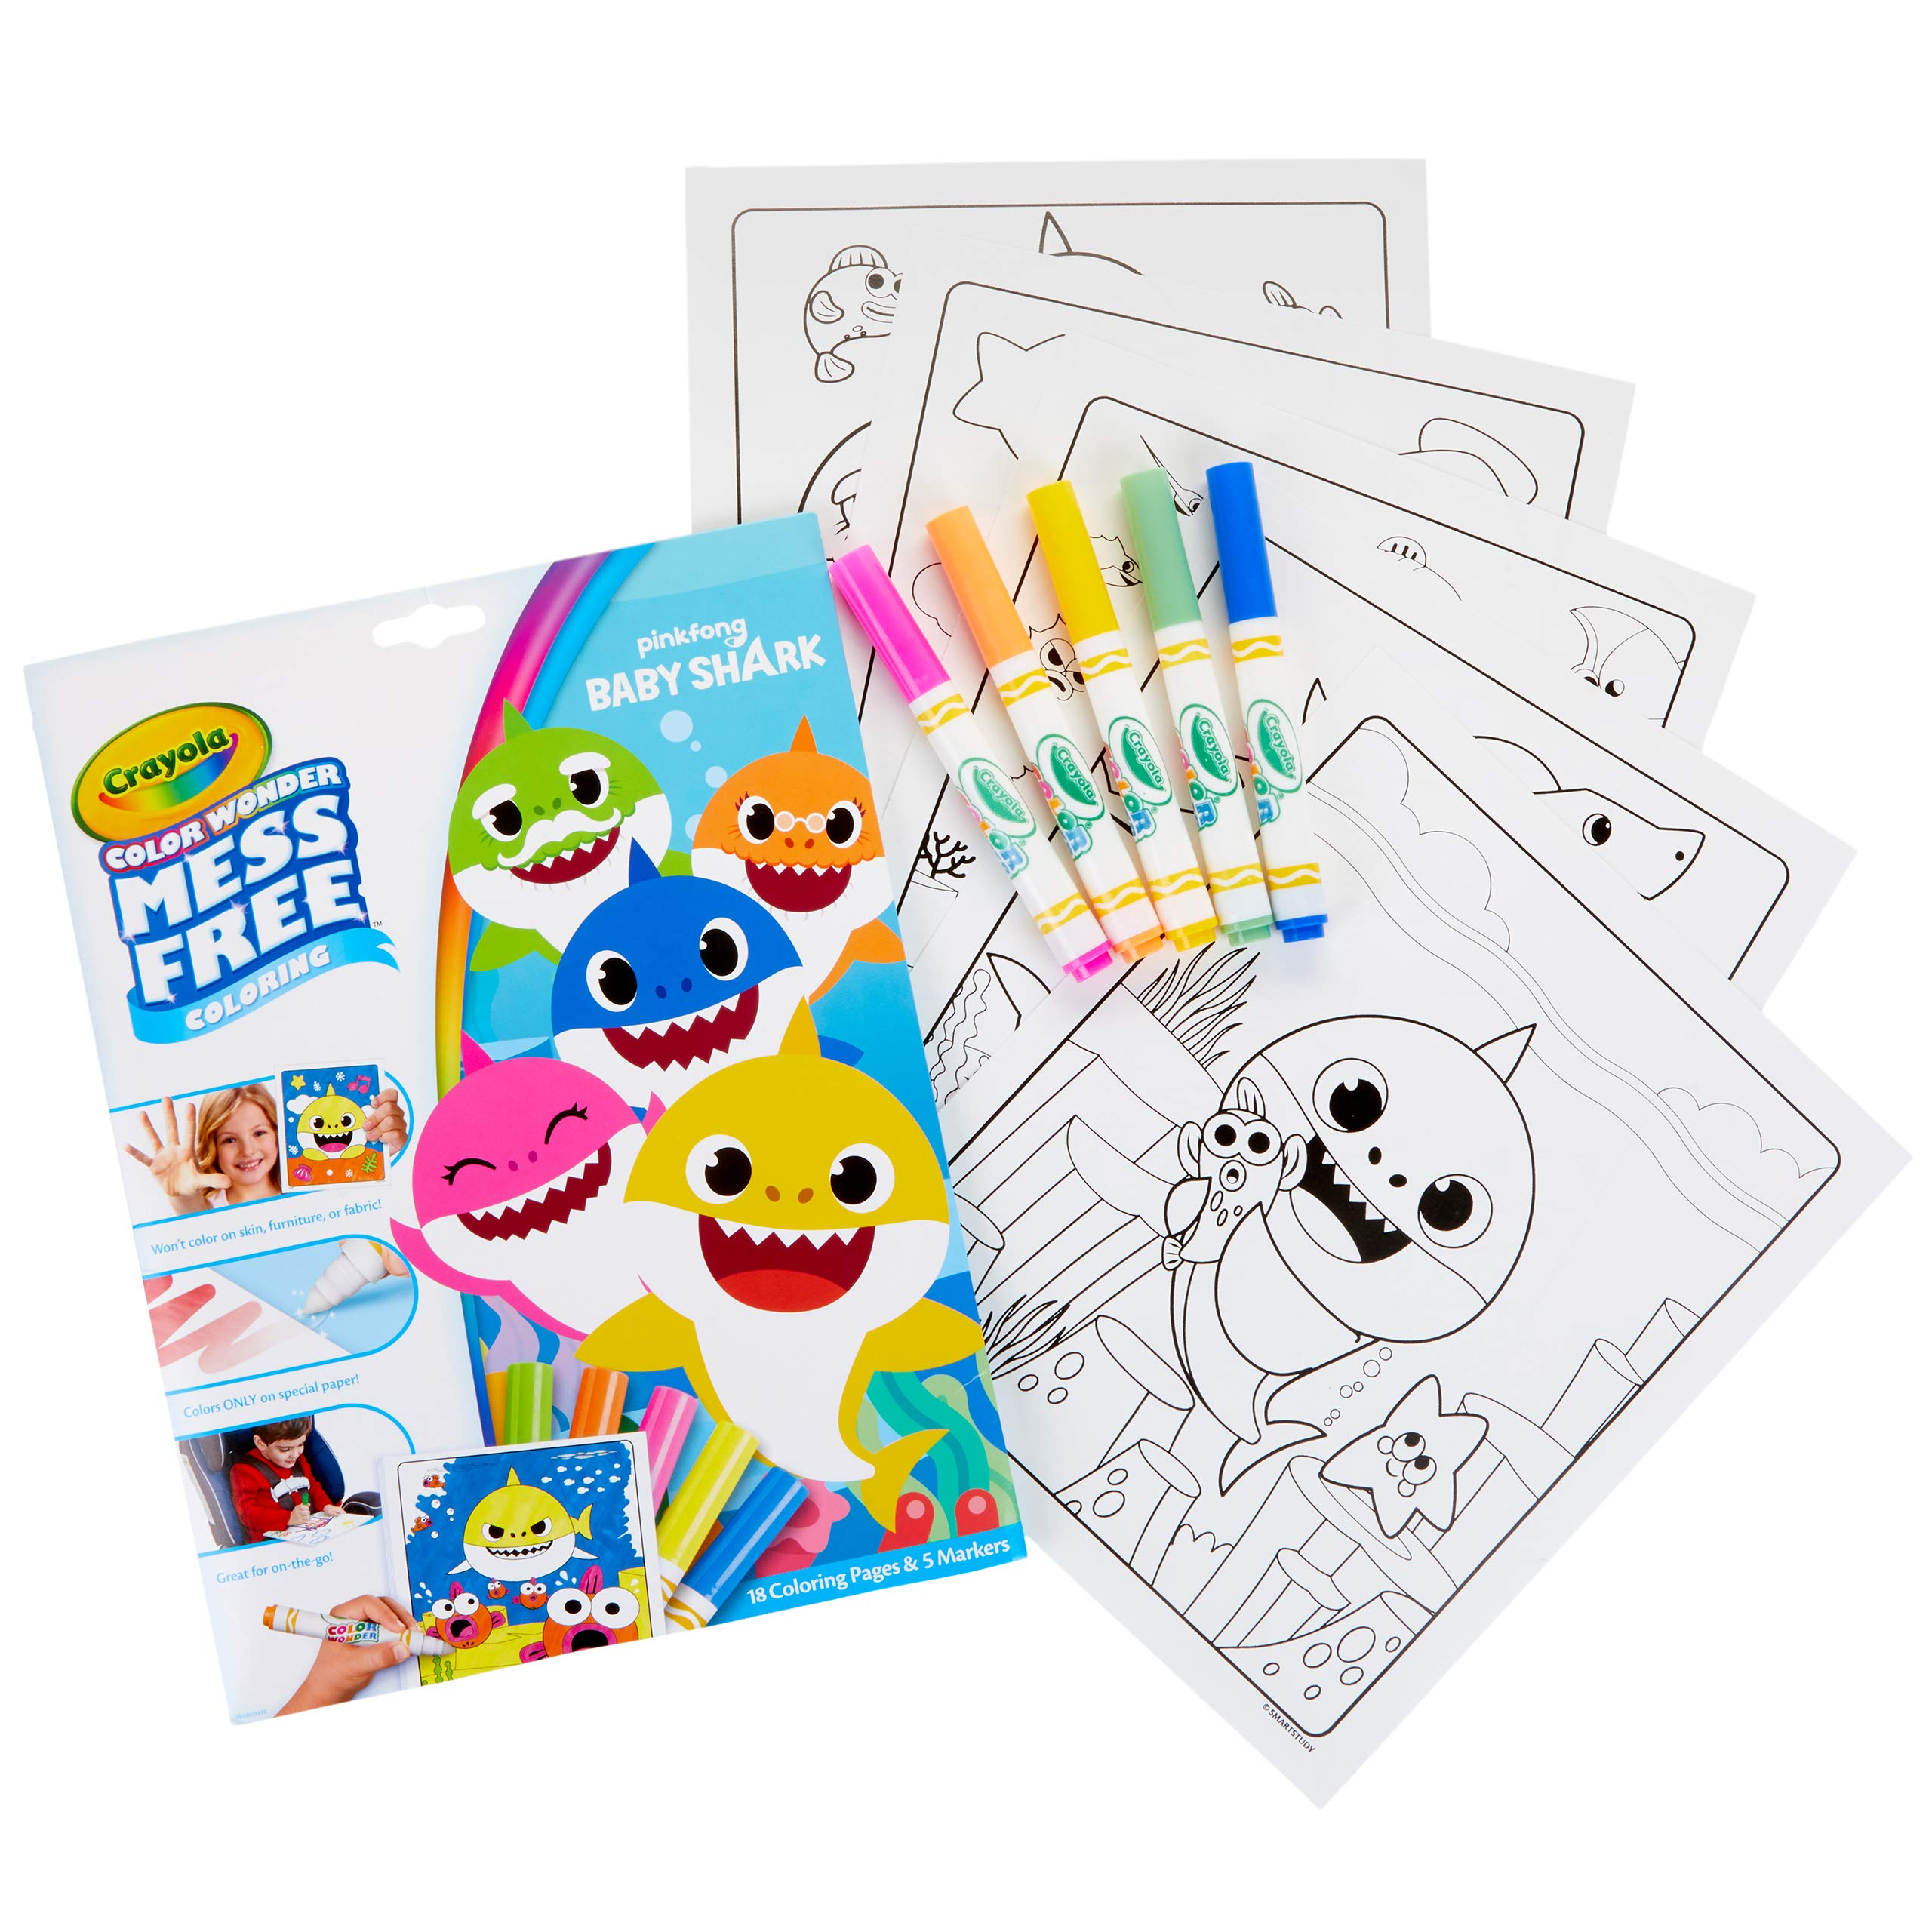 Crayola Baby Shark Wonder Pages Mess Free Coloring Gift Kids Indoor Activities at Home